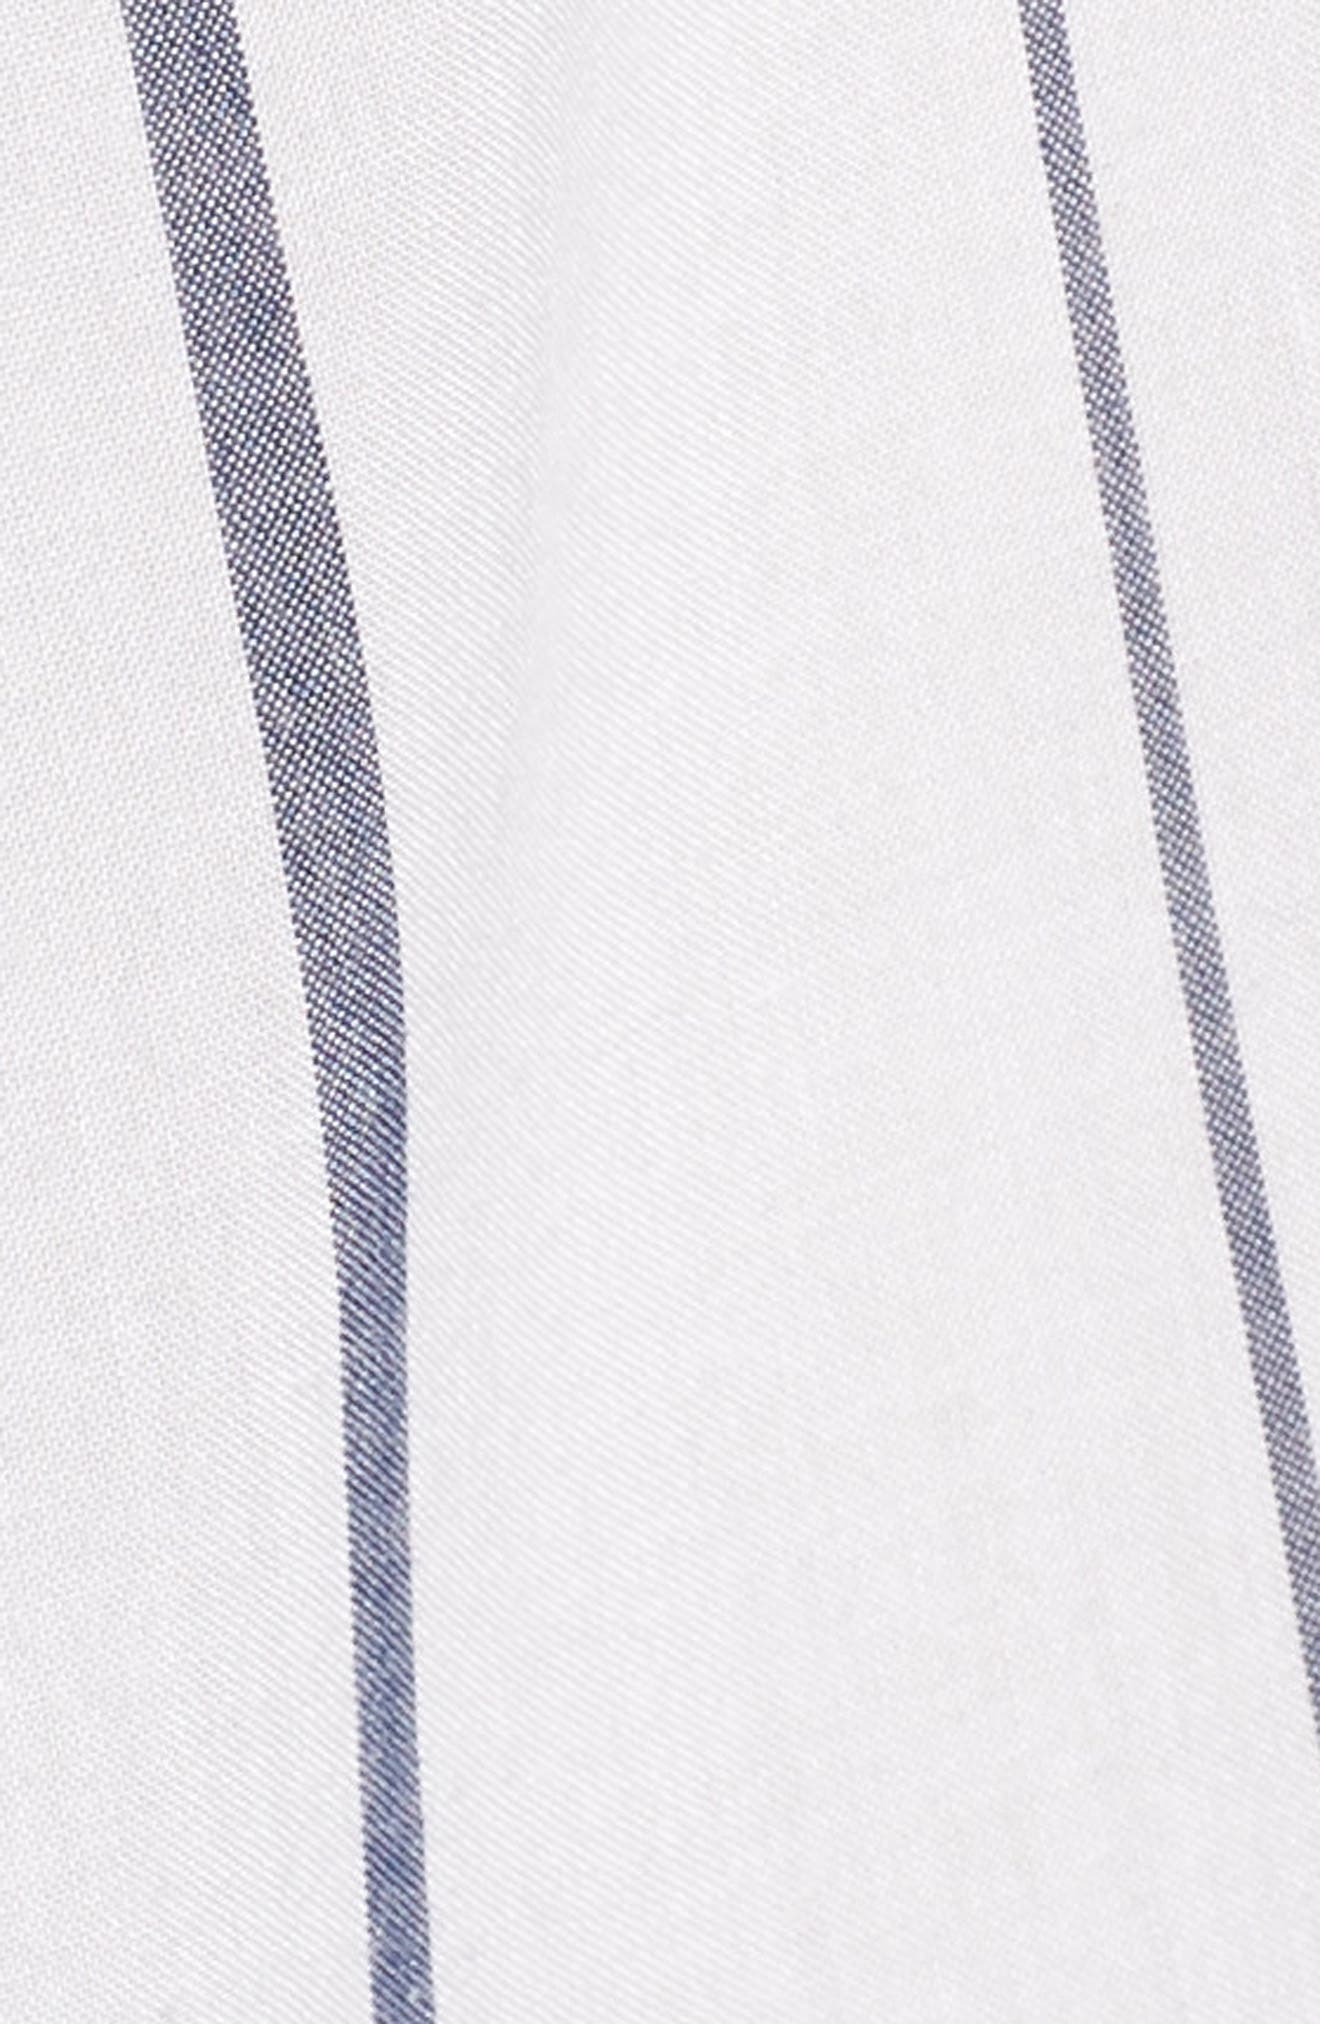 Canyons Stripe Shirt,                             Alternate thumbnail 5, color,                             White/ Navy Stripe